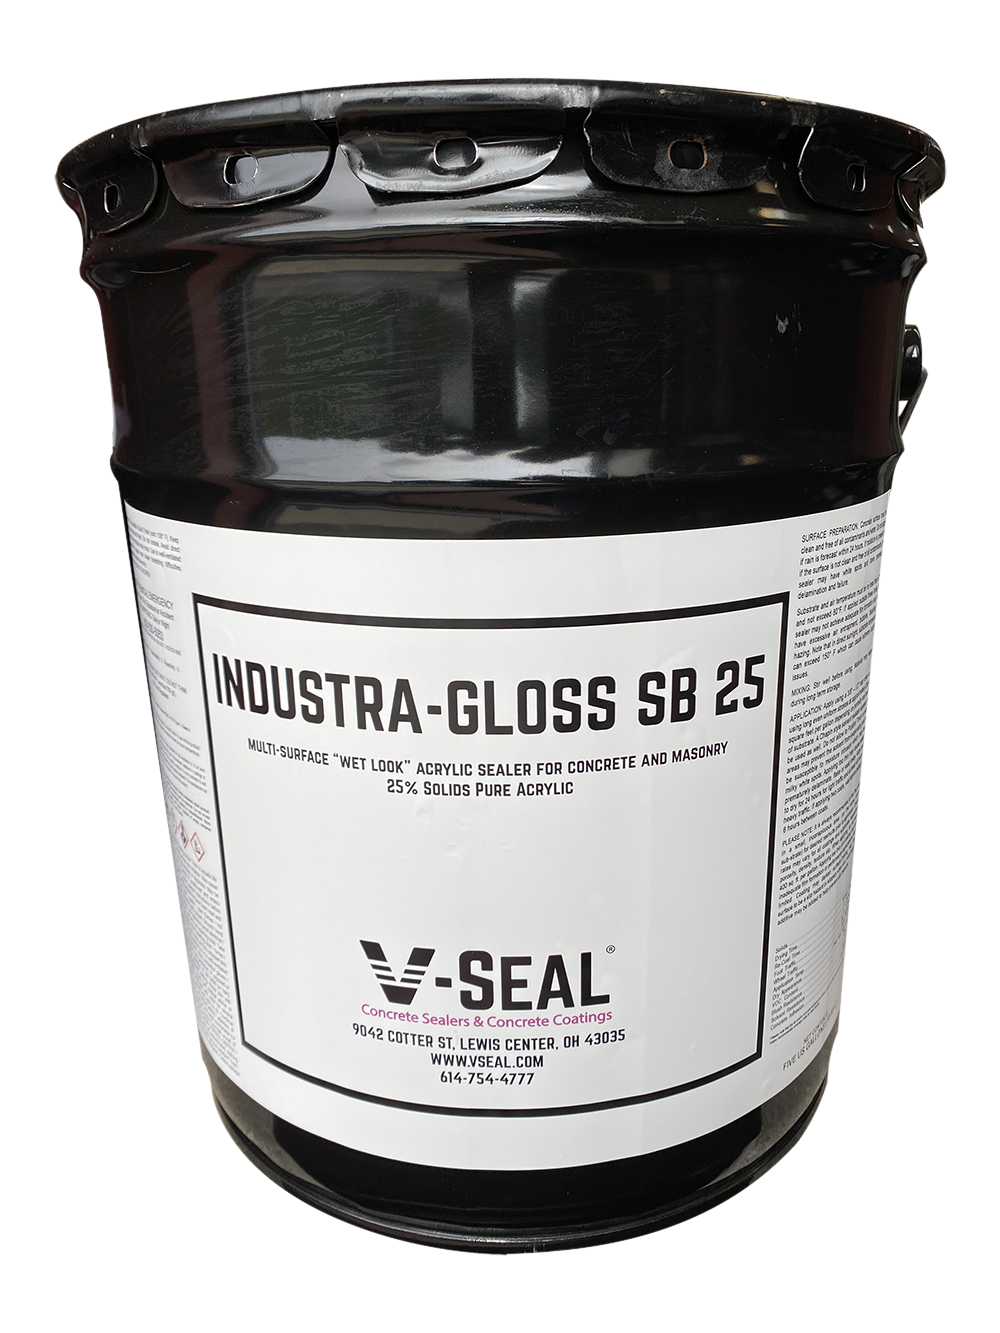 https://www.vseal.com/media/catalog/product/cache/1/image/9df78eab33525d08d6e5fb8d27136e95/i/n/industra-gloss_sb_25_-_5_gallon_transparency.png